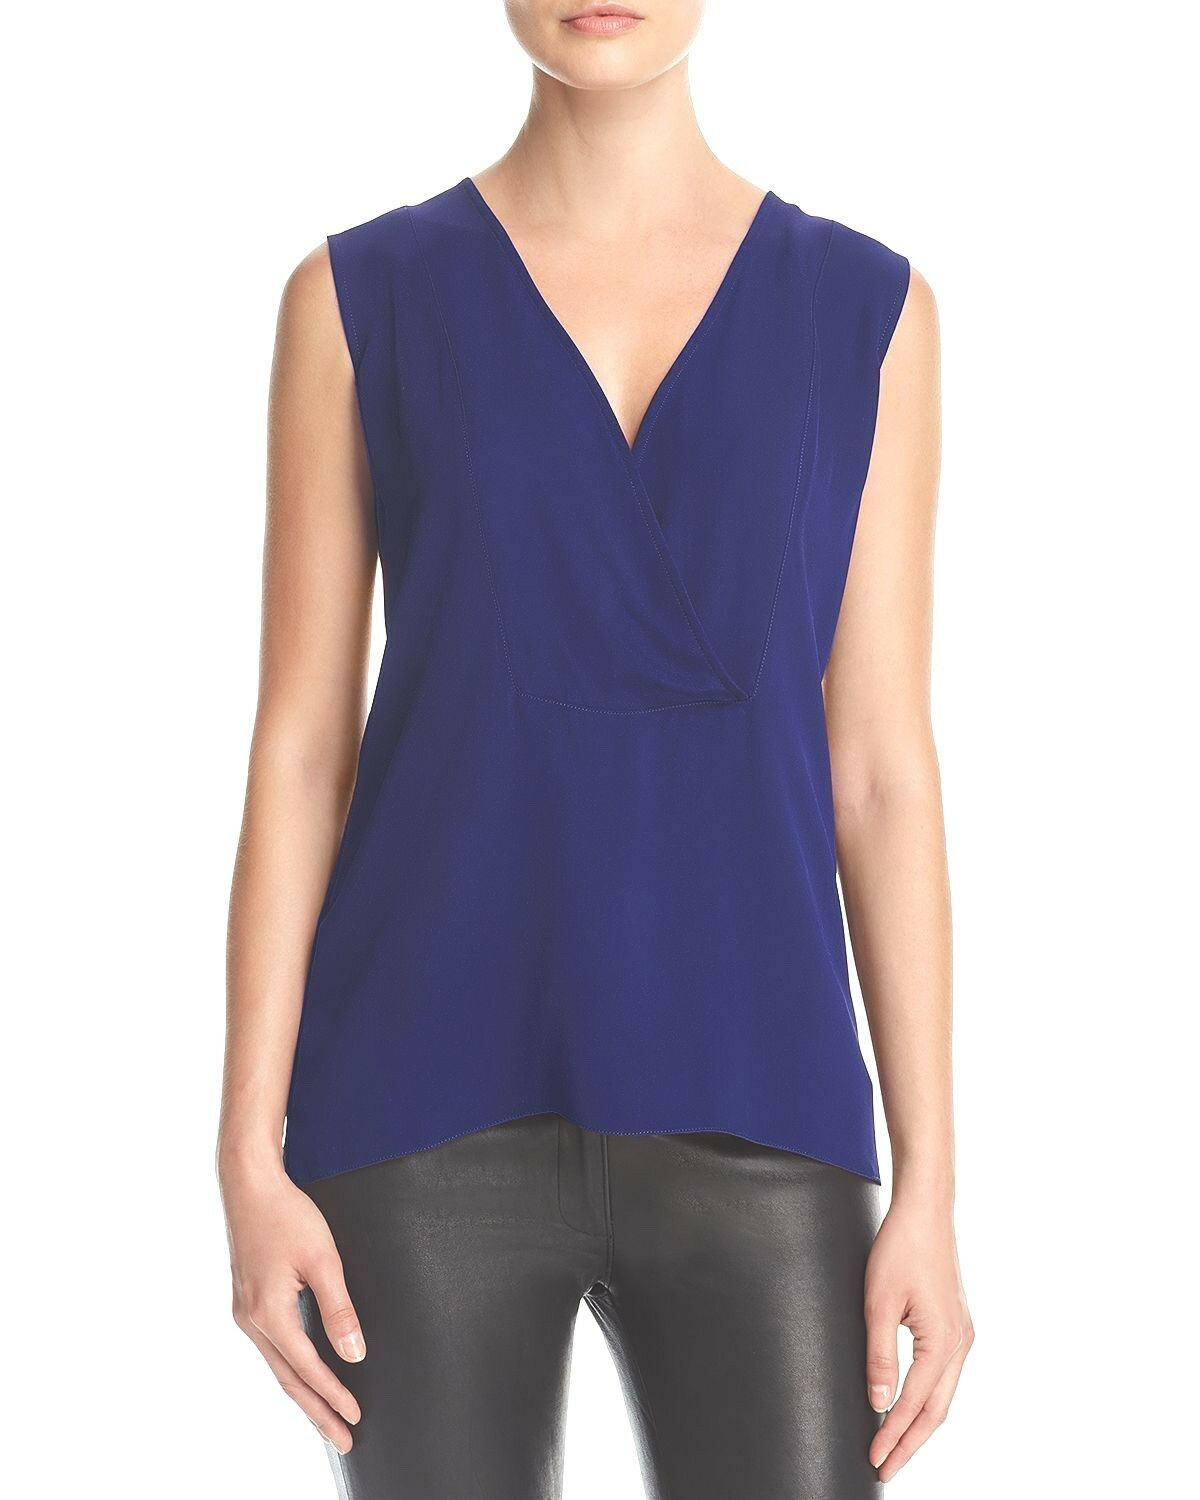 THEORY Women's blueE CredVER SILK SHELL TOP SLEEVELESS BLOUSE Small NWT